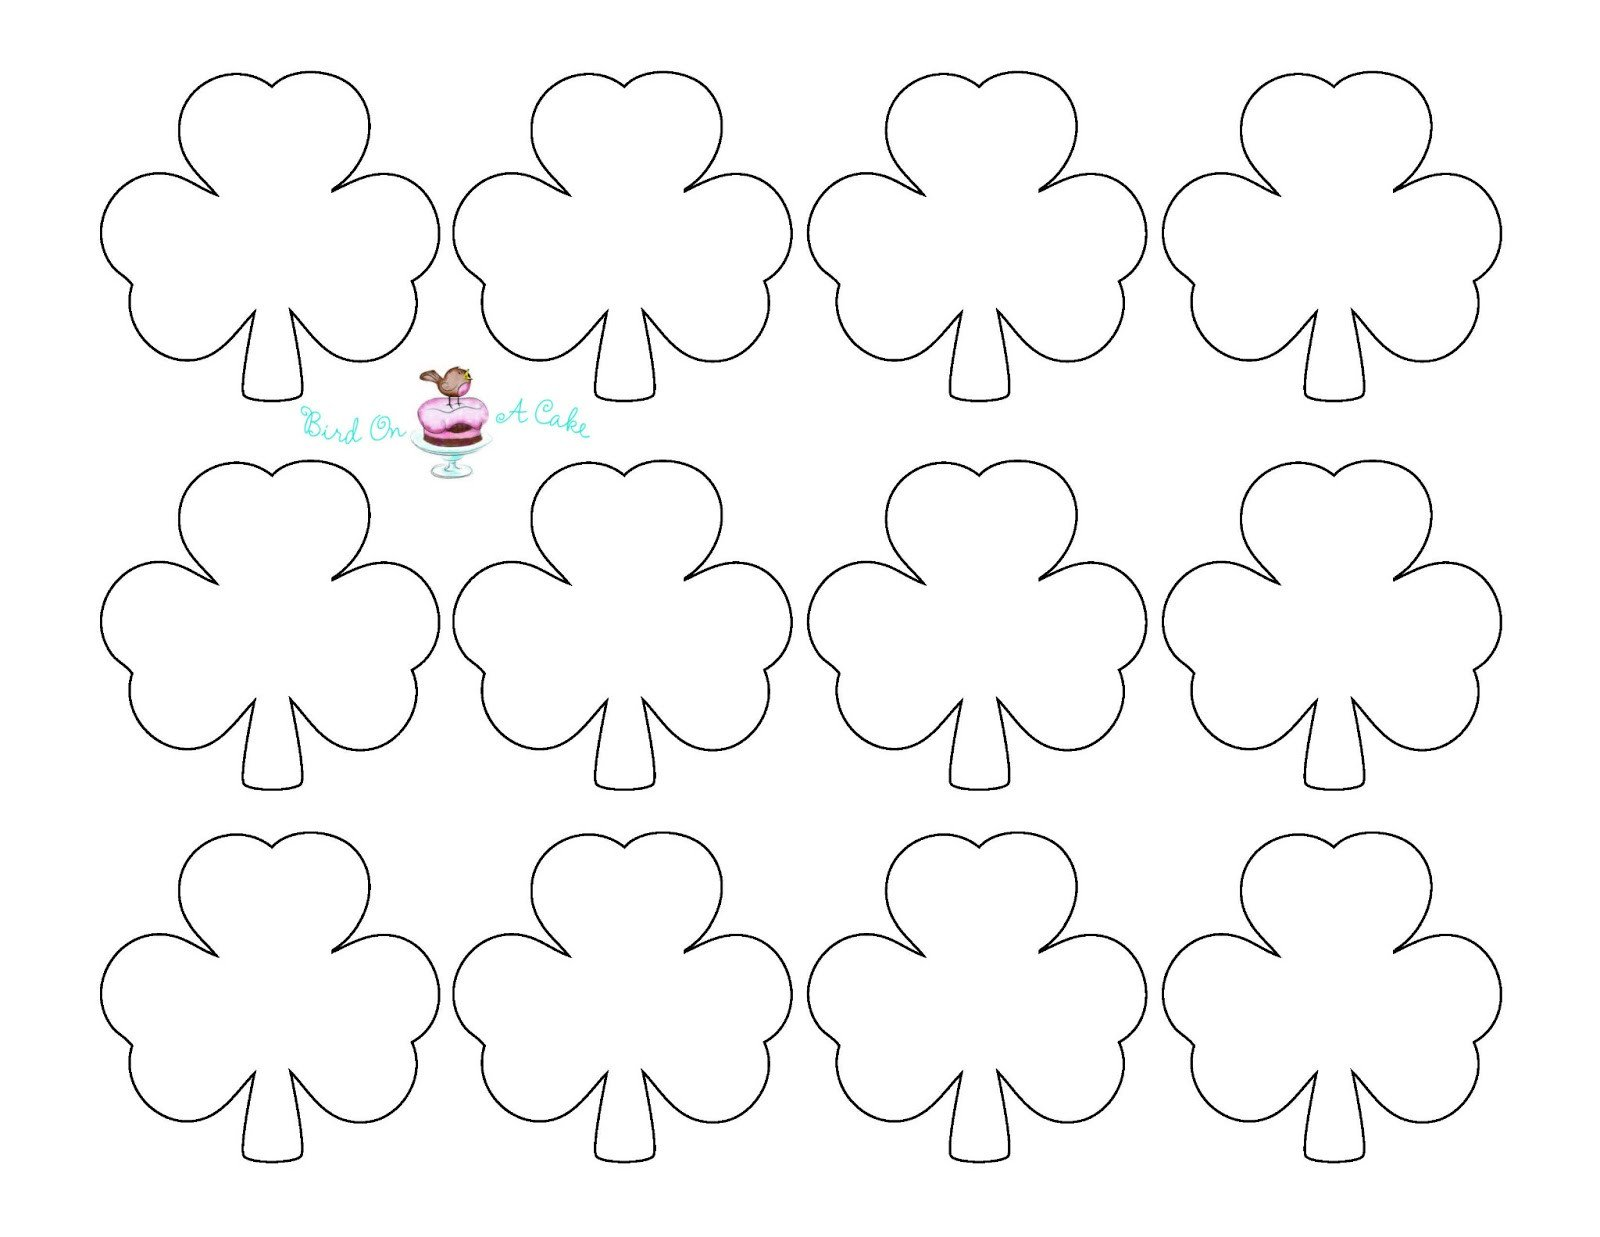 Shamrock Template Free Printable Bird A Cake St Patrick S Day Shamrock Cupcake toppers